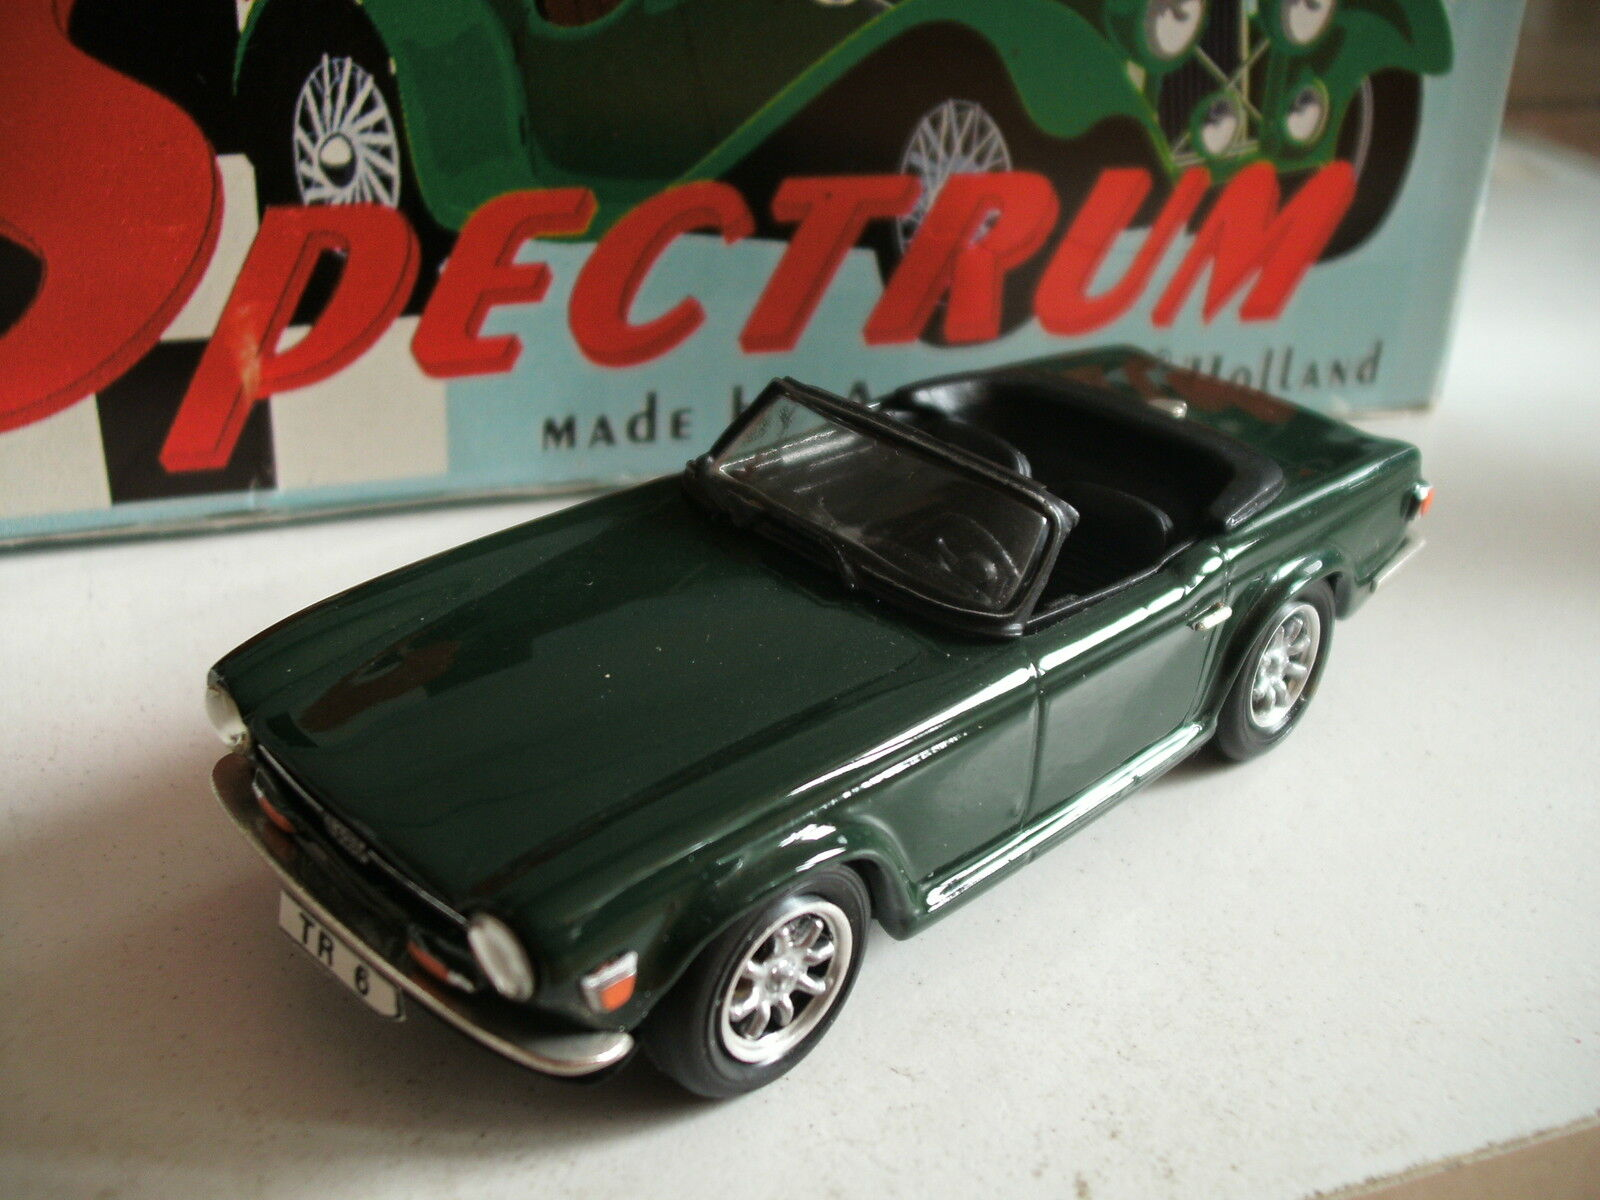 Spectrum Cardrome Handbuilt Triump TR 6 in British Racing Grün on 1 43 in Box